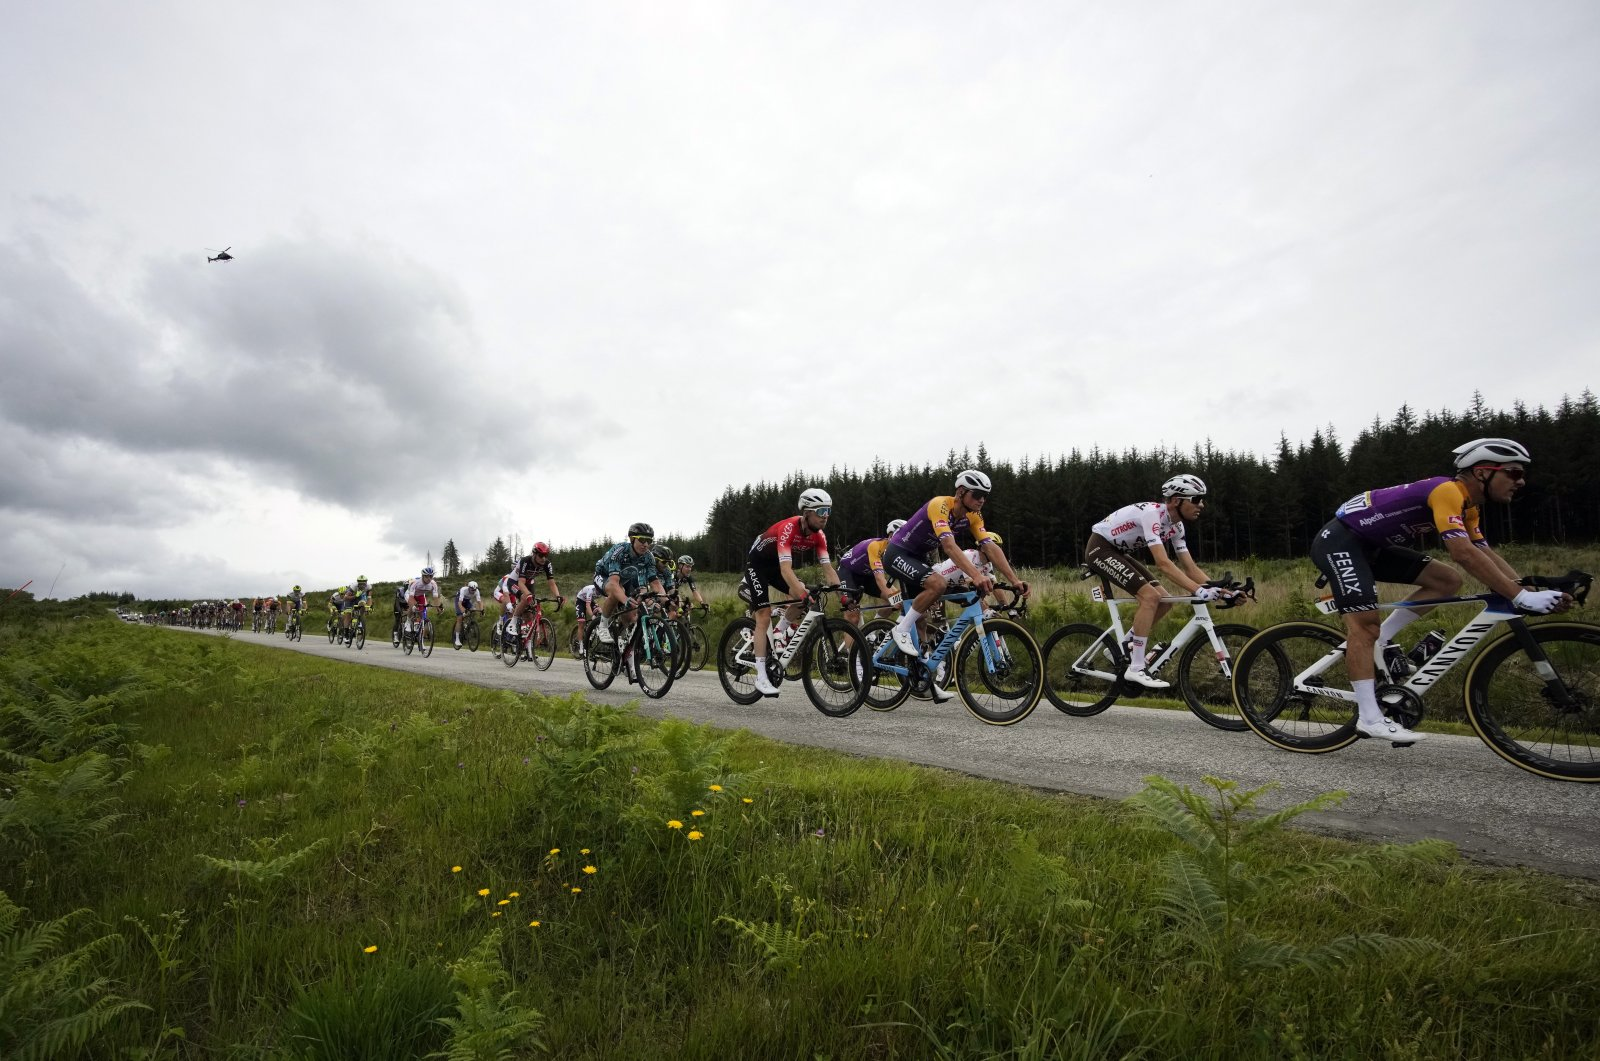 The pack rides during the first stage of the Tour de France cycling race over 197.8 kilometers (122.9 miles) with start in Brest and finish in Landerneau, France, June 26, 2021. (AP Photo)